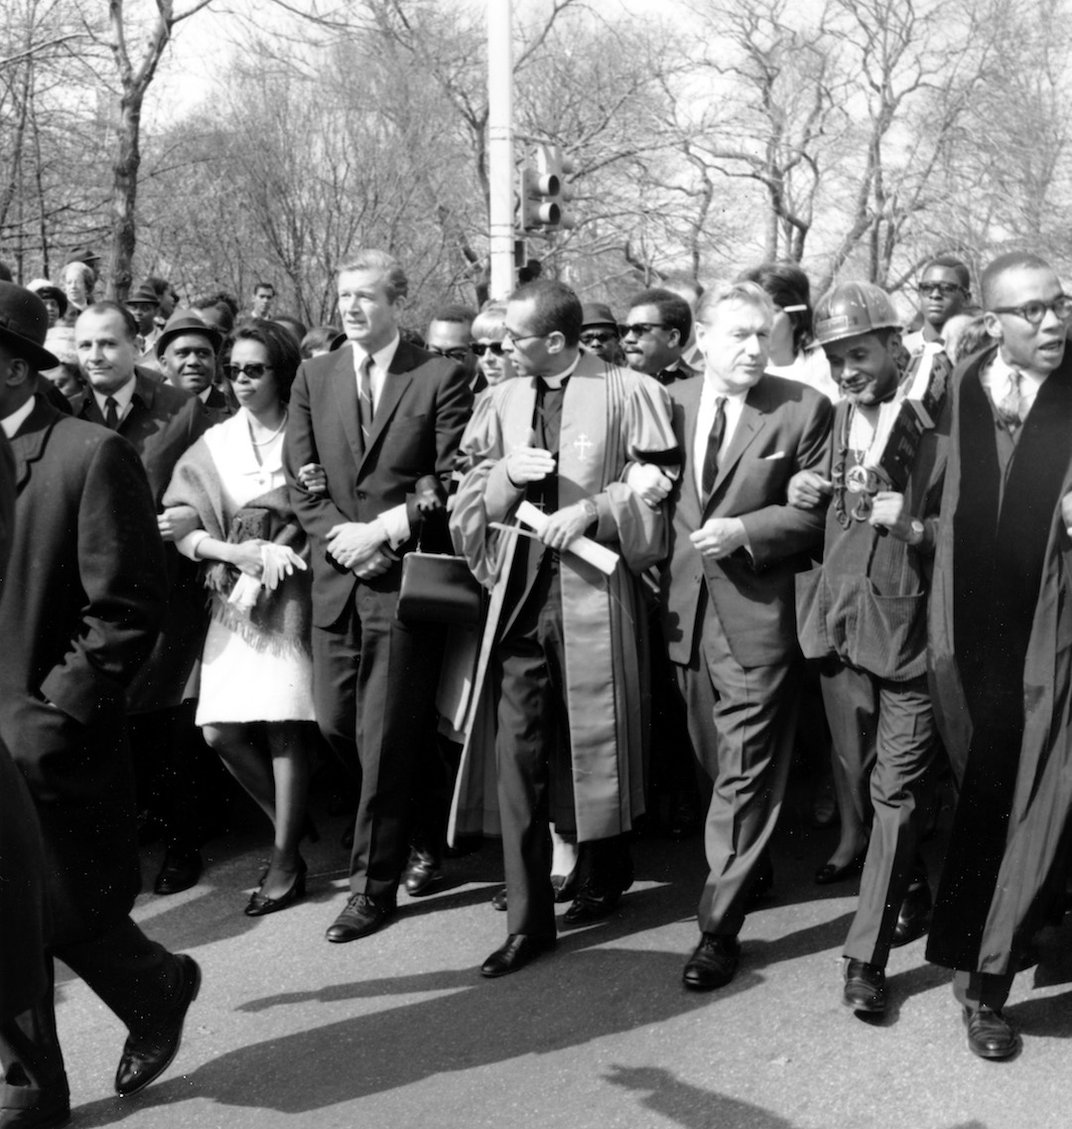 Martin Luther King Jr.'s Assassination Sparked Uprisings in Cities Across America